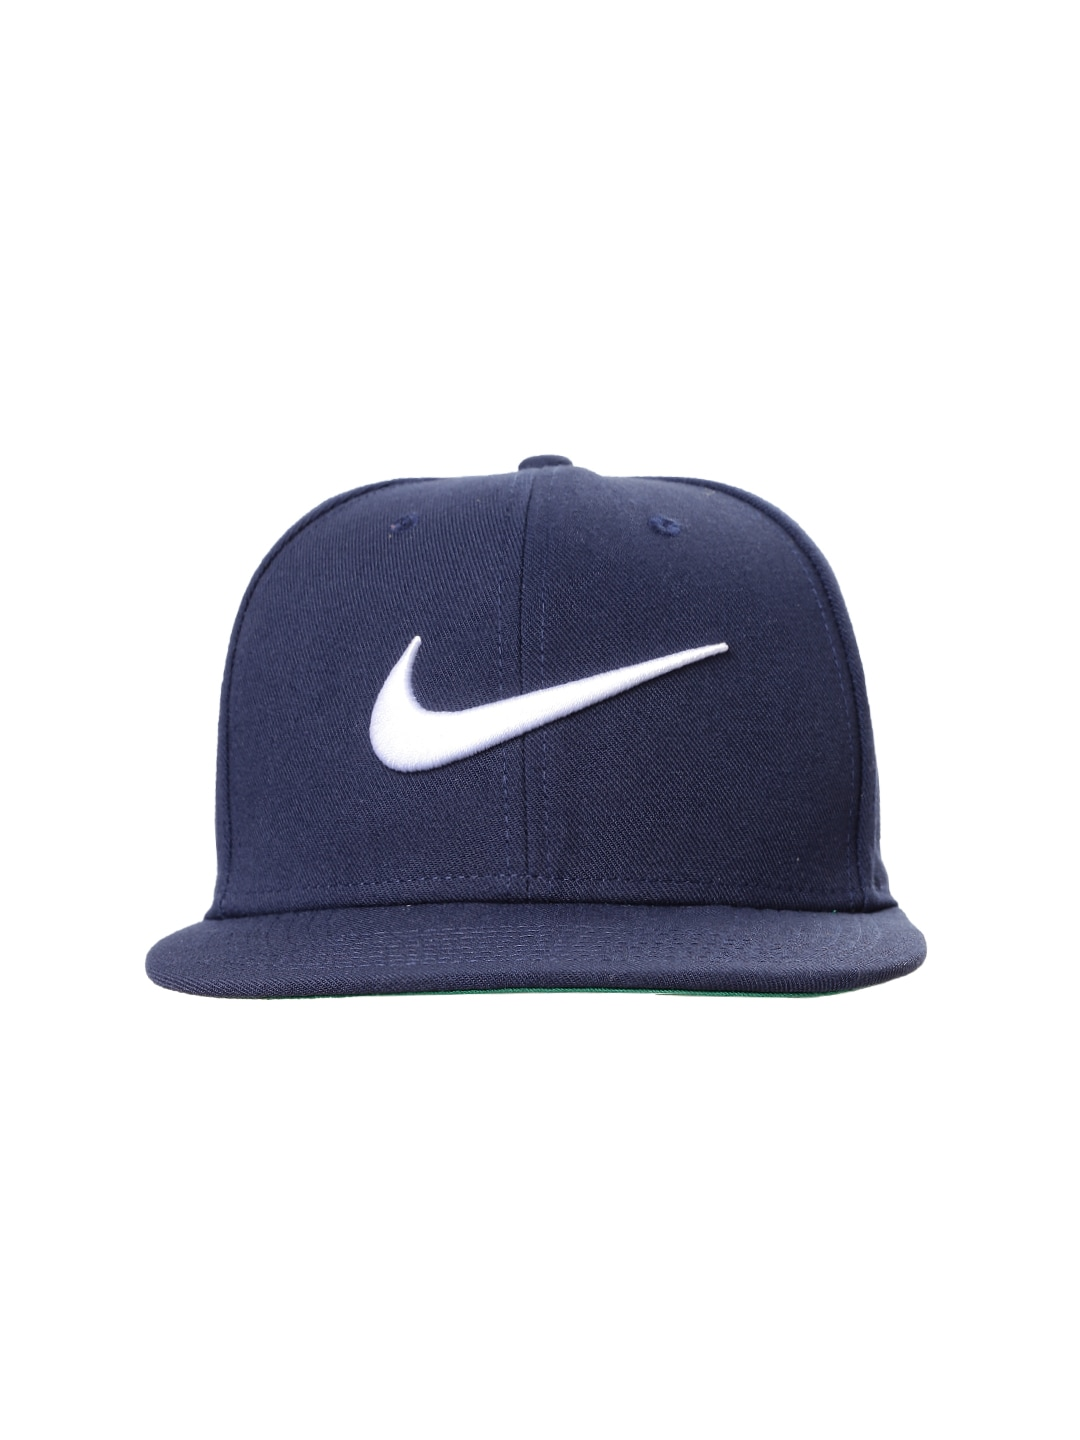 a094d7deef2 Navy Blue Blue Cap - Buy Navy Blue Blue Cap online in India